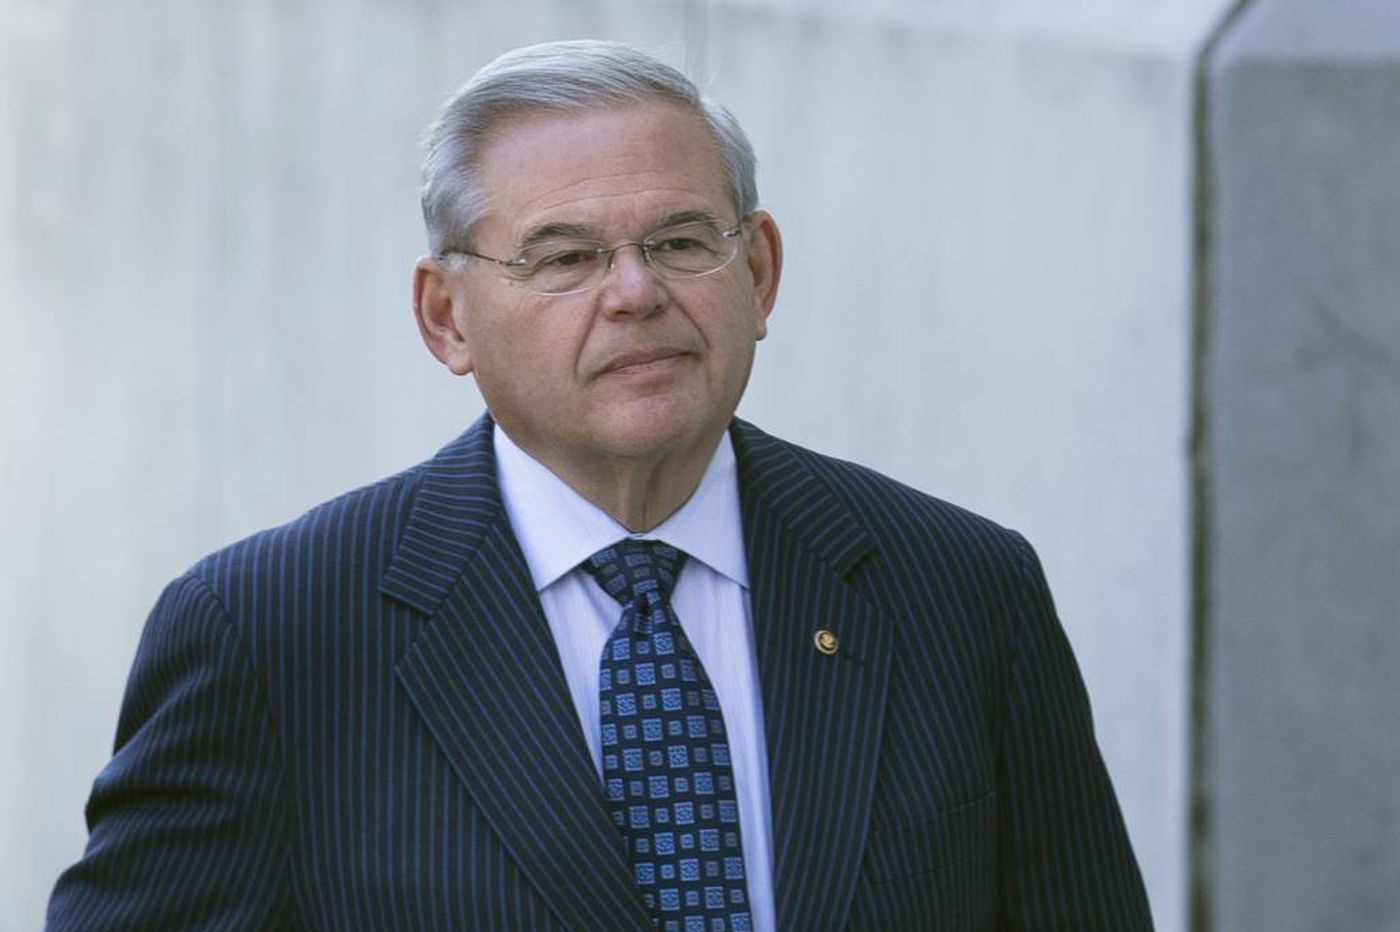 Menendez's defense will discount allegations